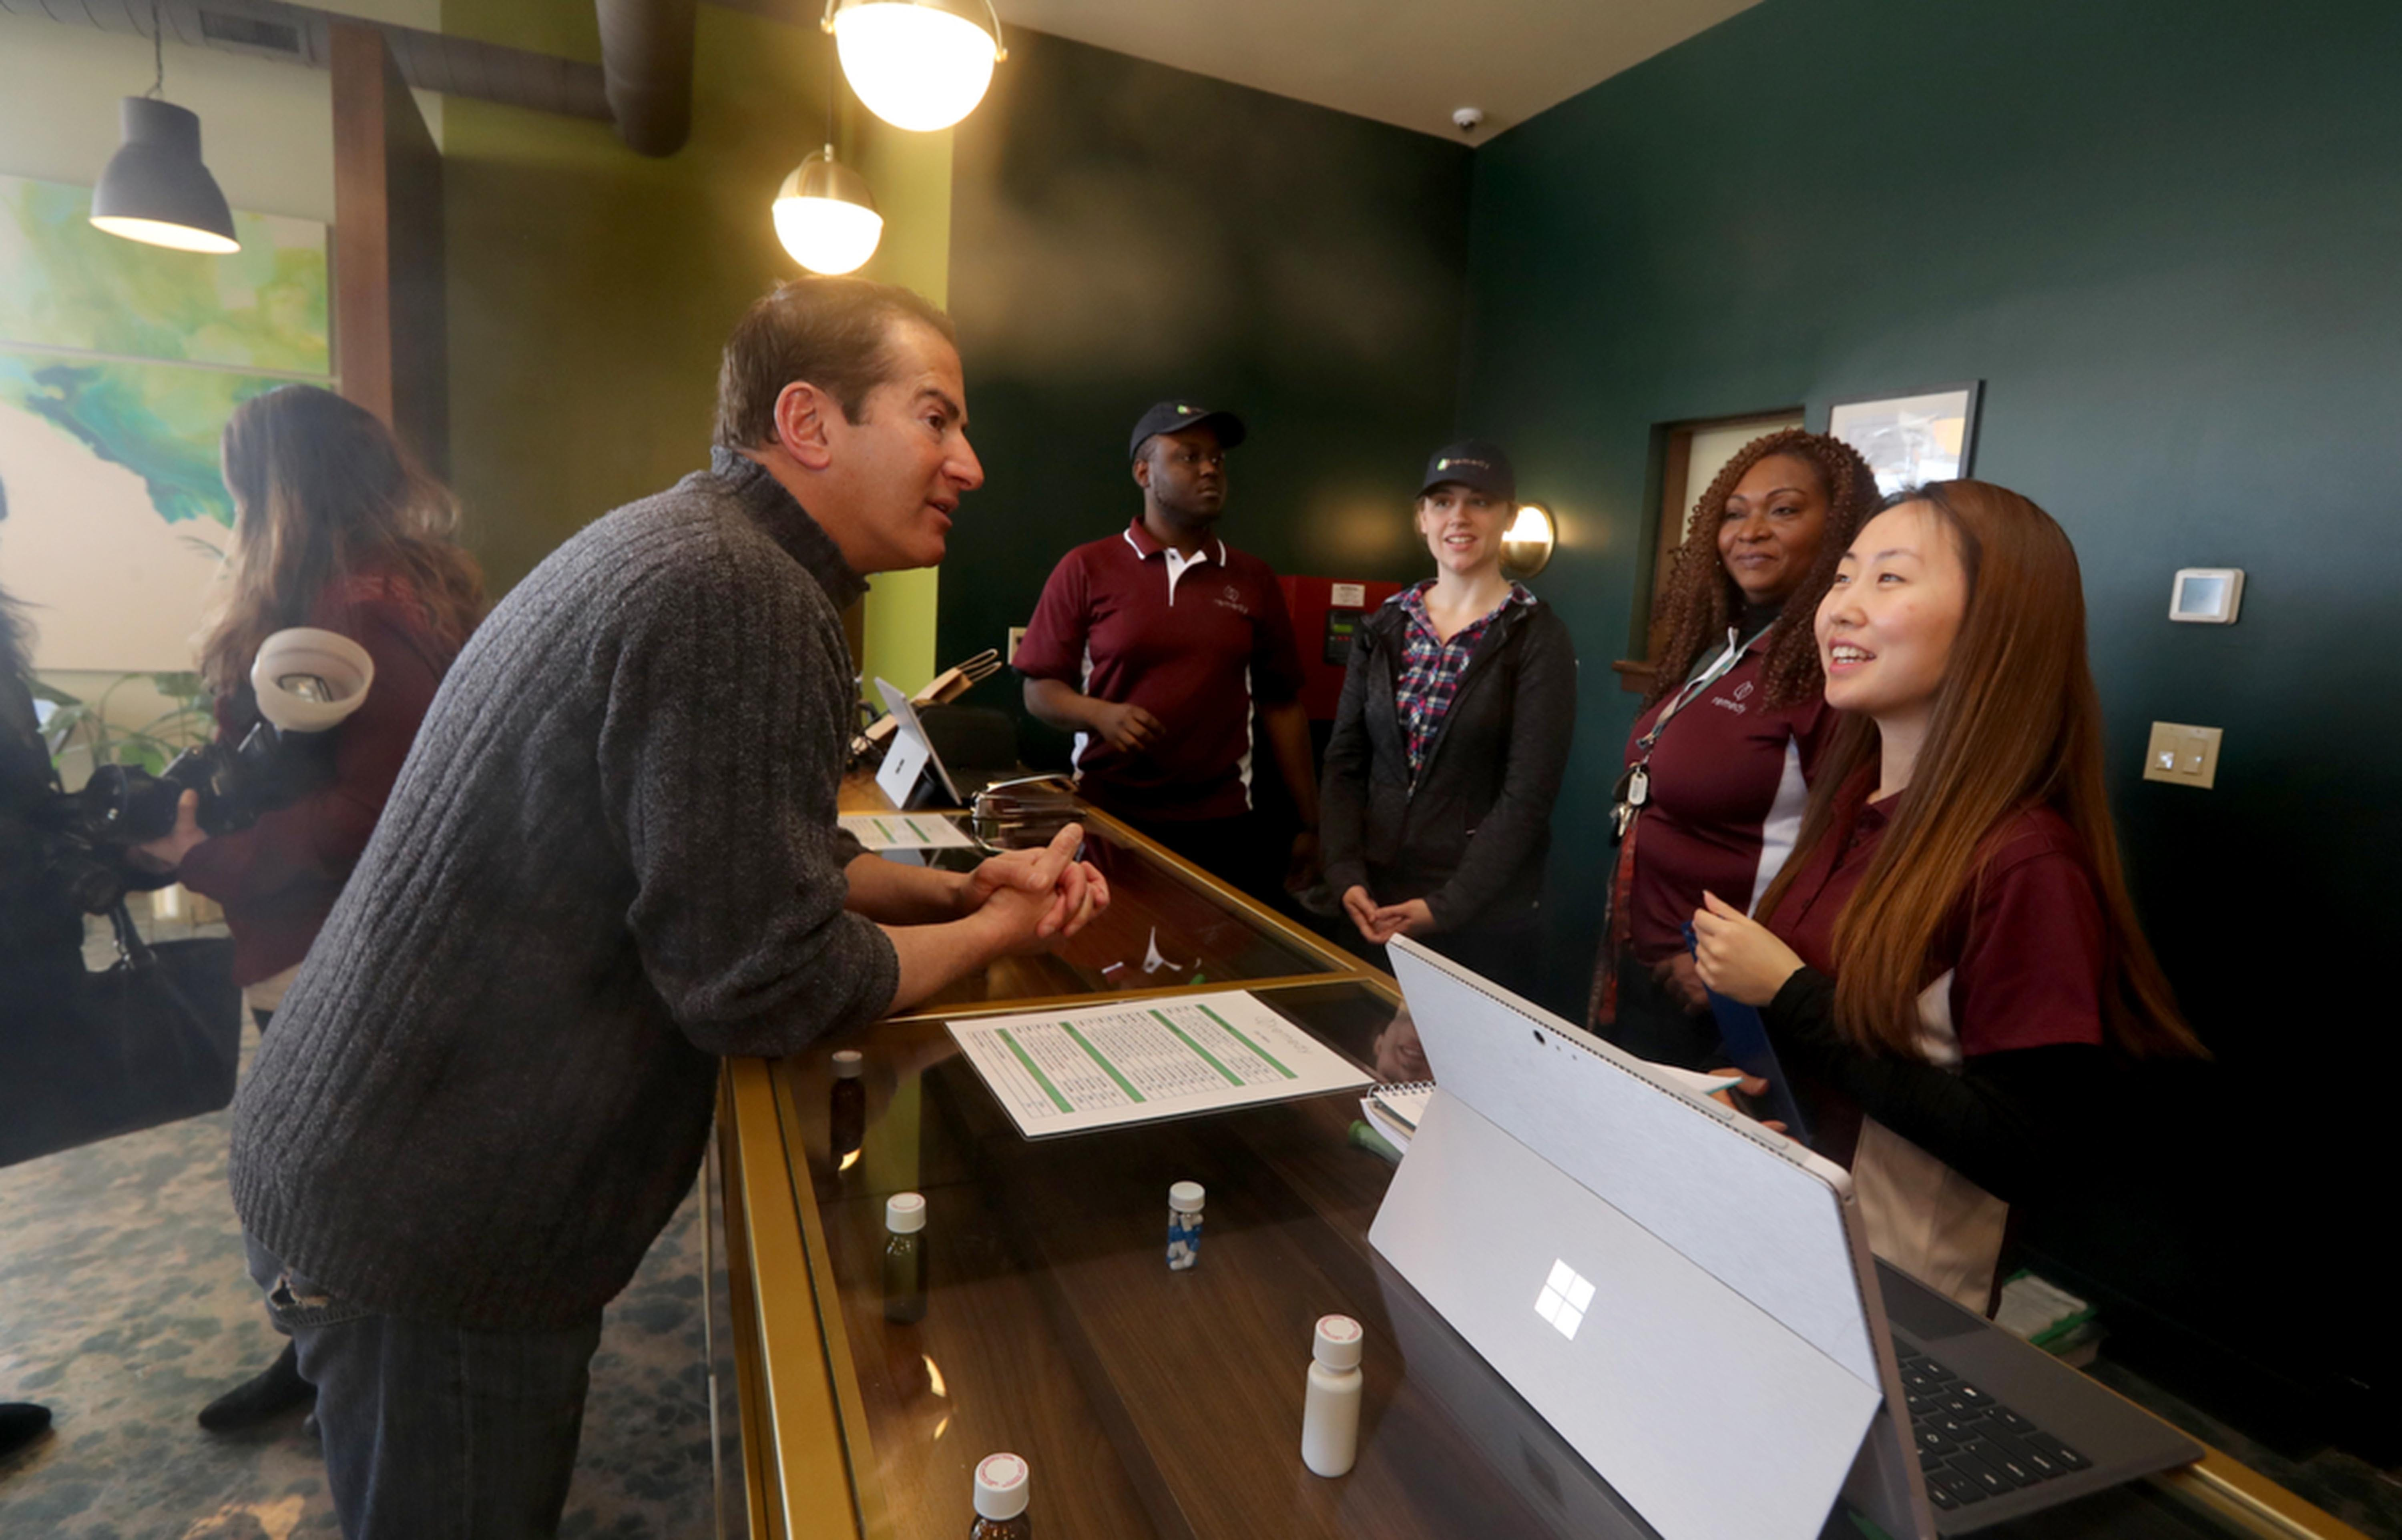 Video: Medical marijuana dispensary opens in Rockland County